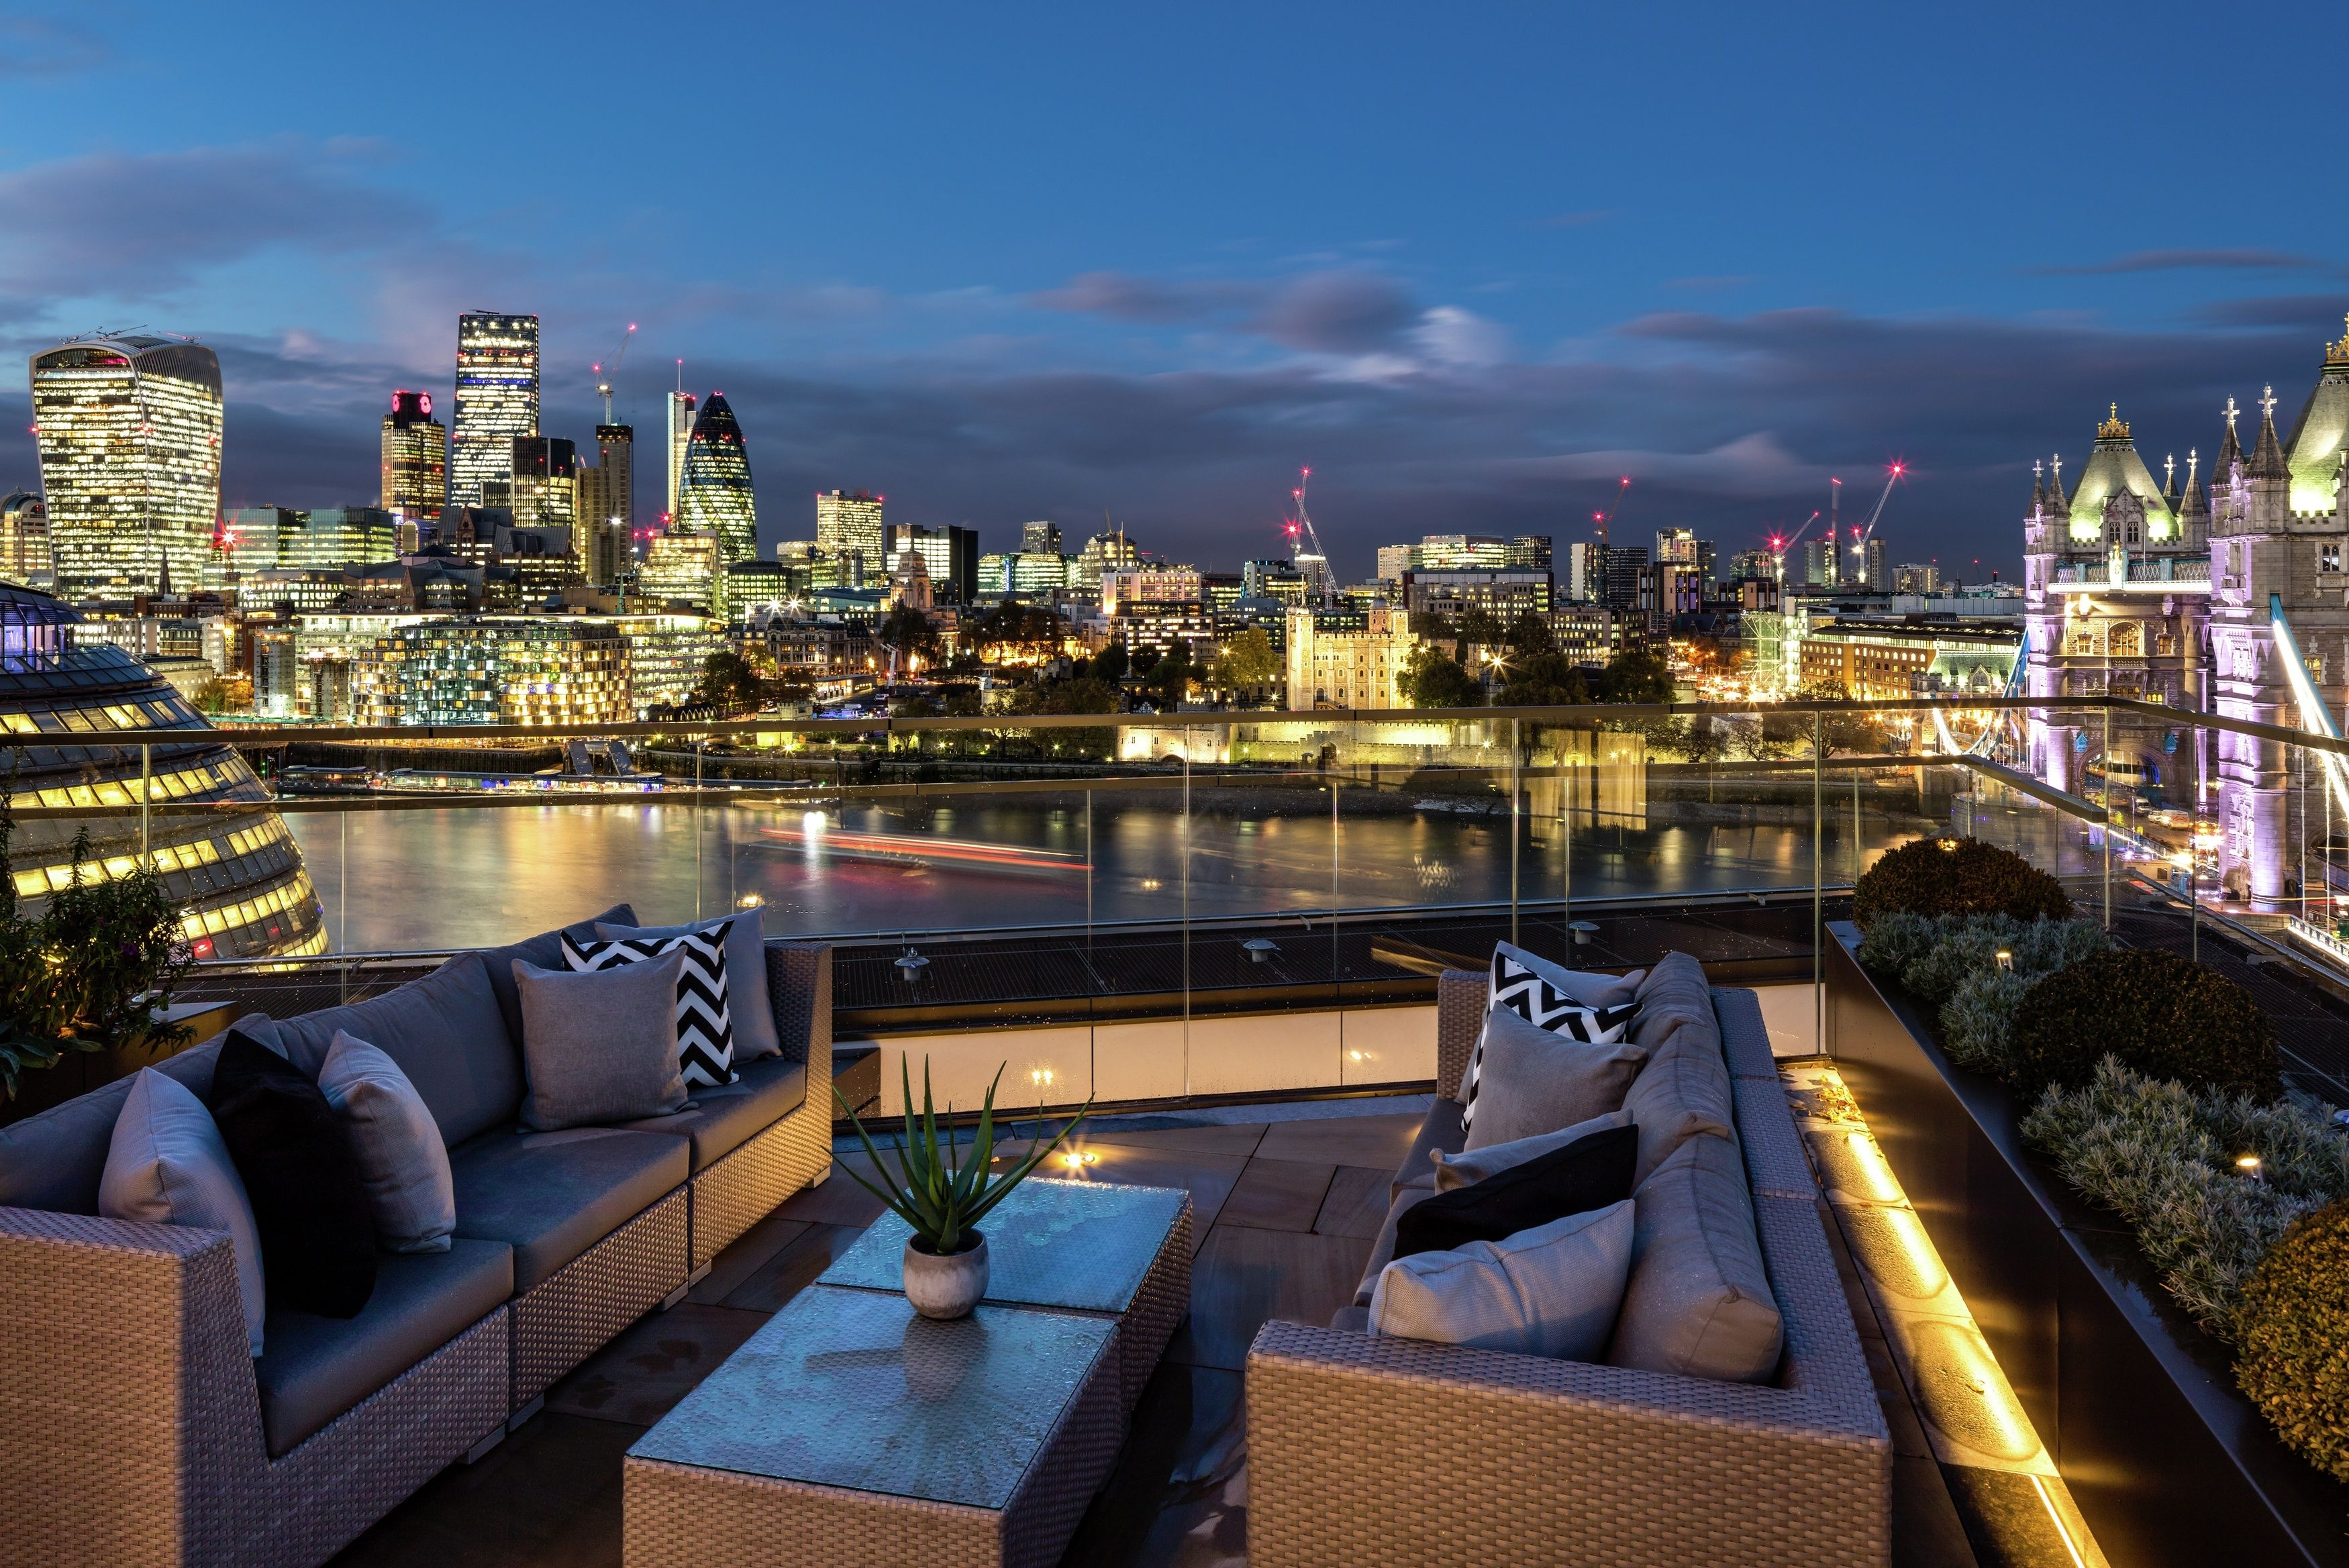 Dreams Views Are Made A Reality At One Tower Bridge Take In These Amazing London Skyline Views City View Apartment Luxury Homes Dream Houses Luxury Penthouse